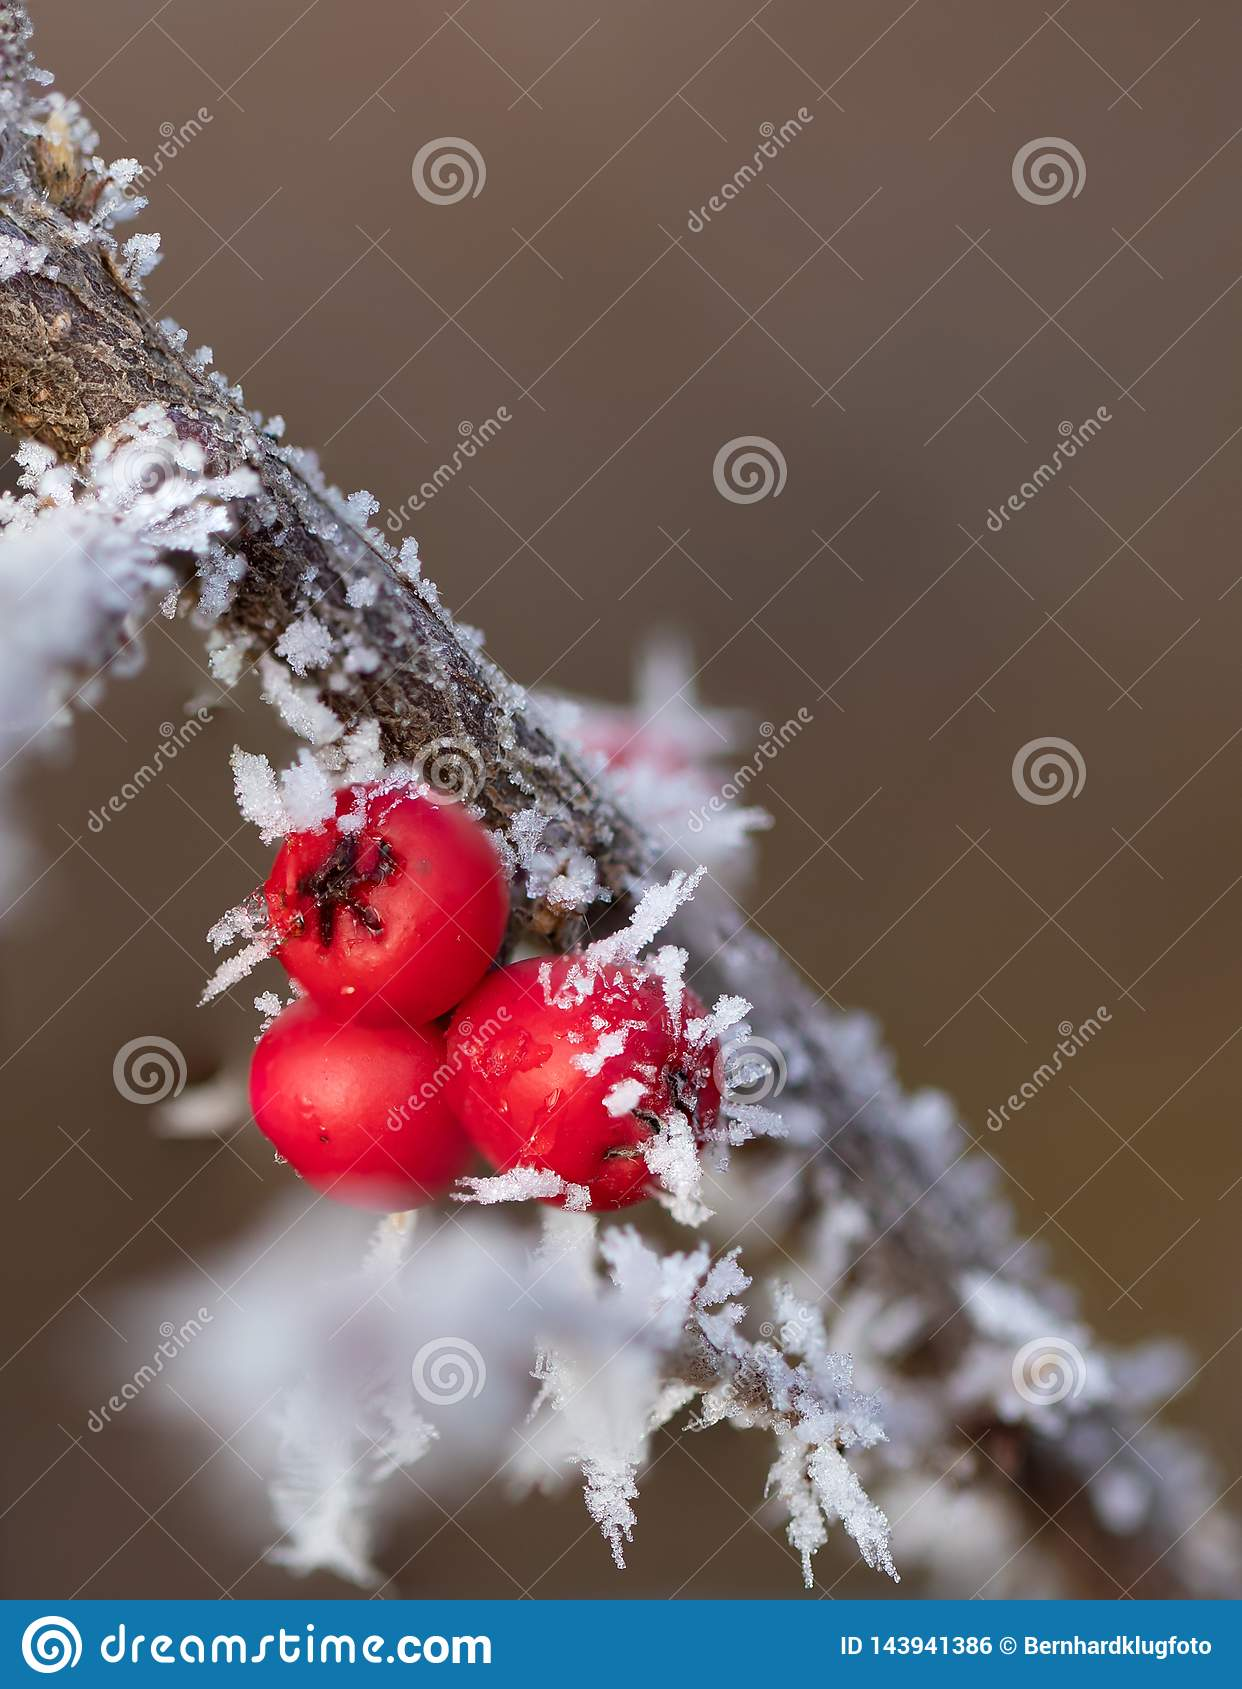 Red berries with ice needles